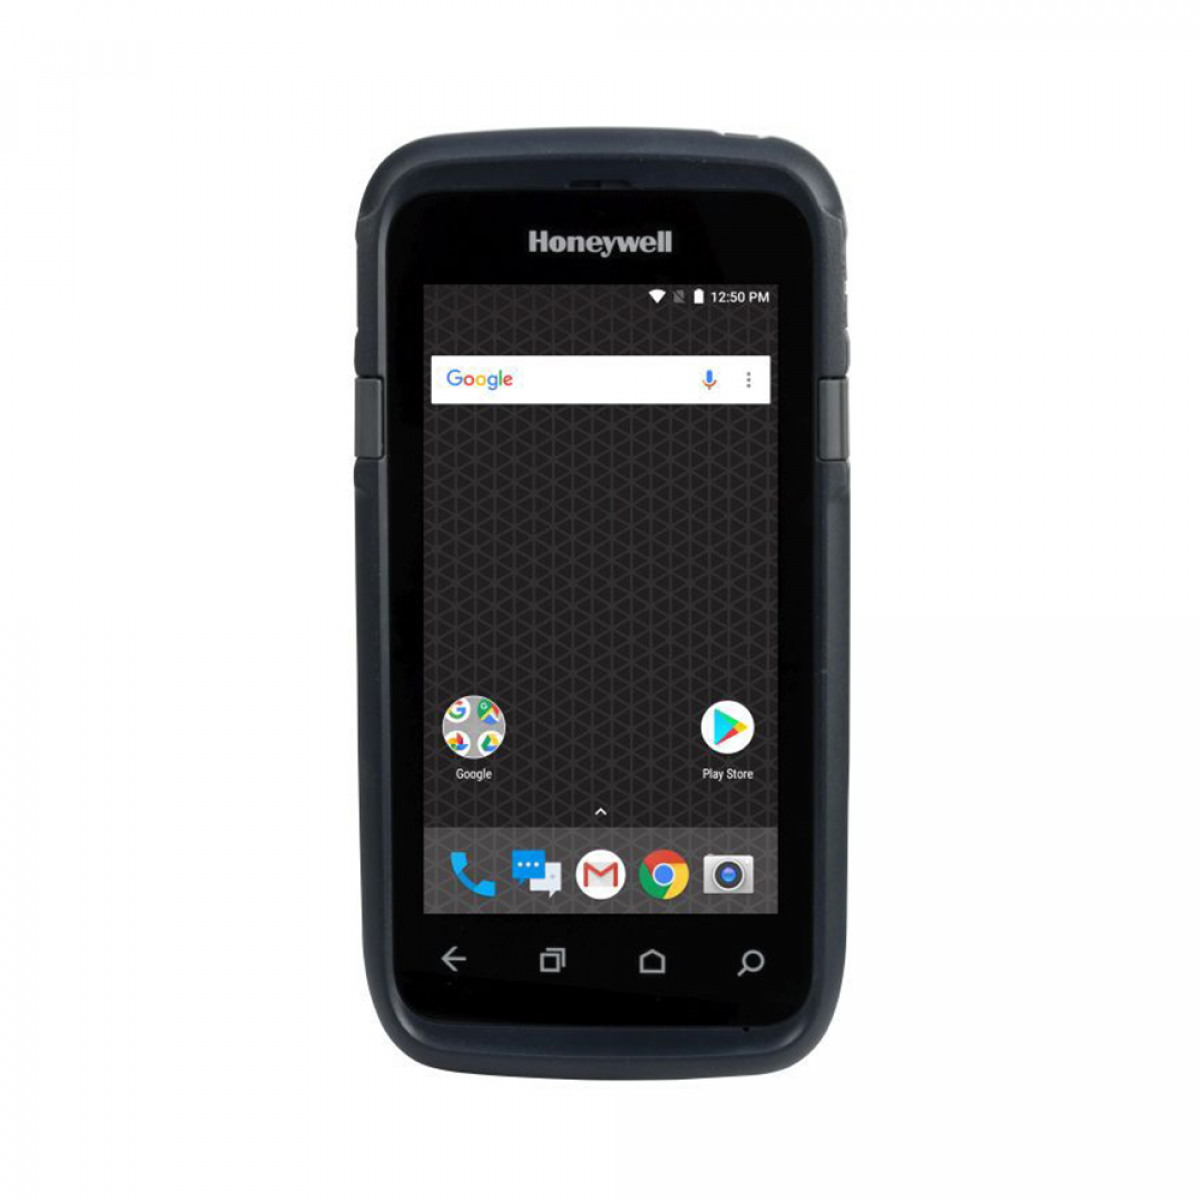 Honeywell CT60 voice enabled mobile computer